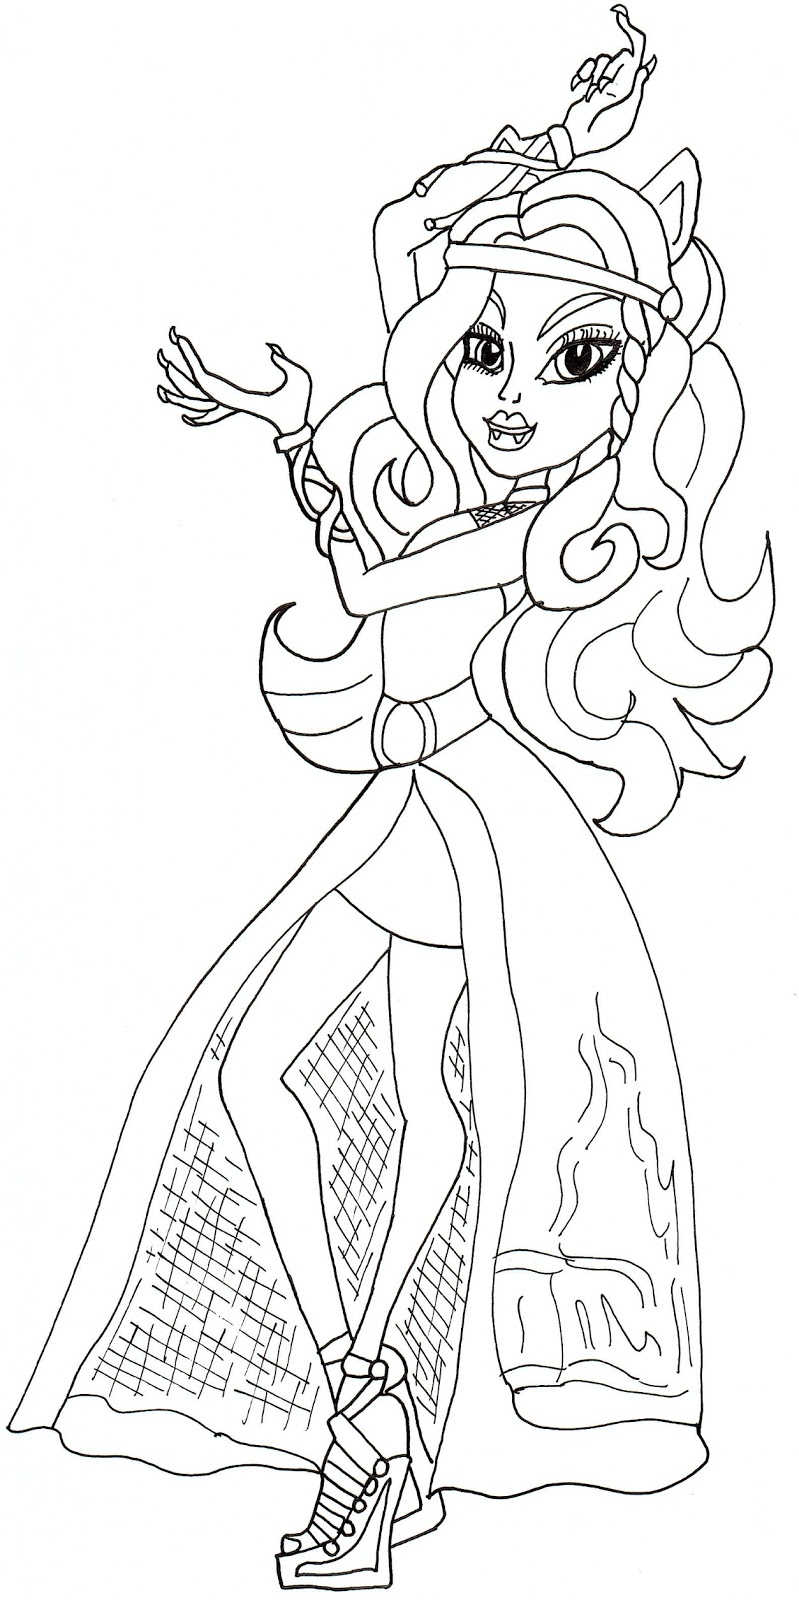 Free Printable Monster High Coloring Pages: Clawdeen Haunt